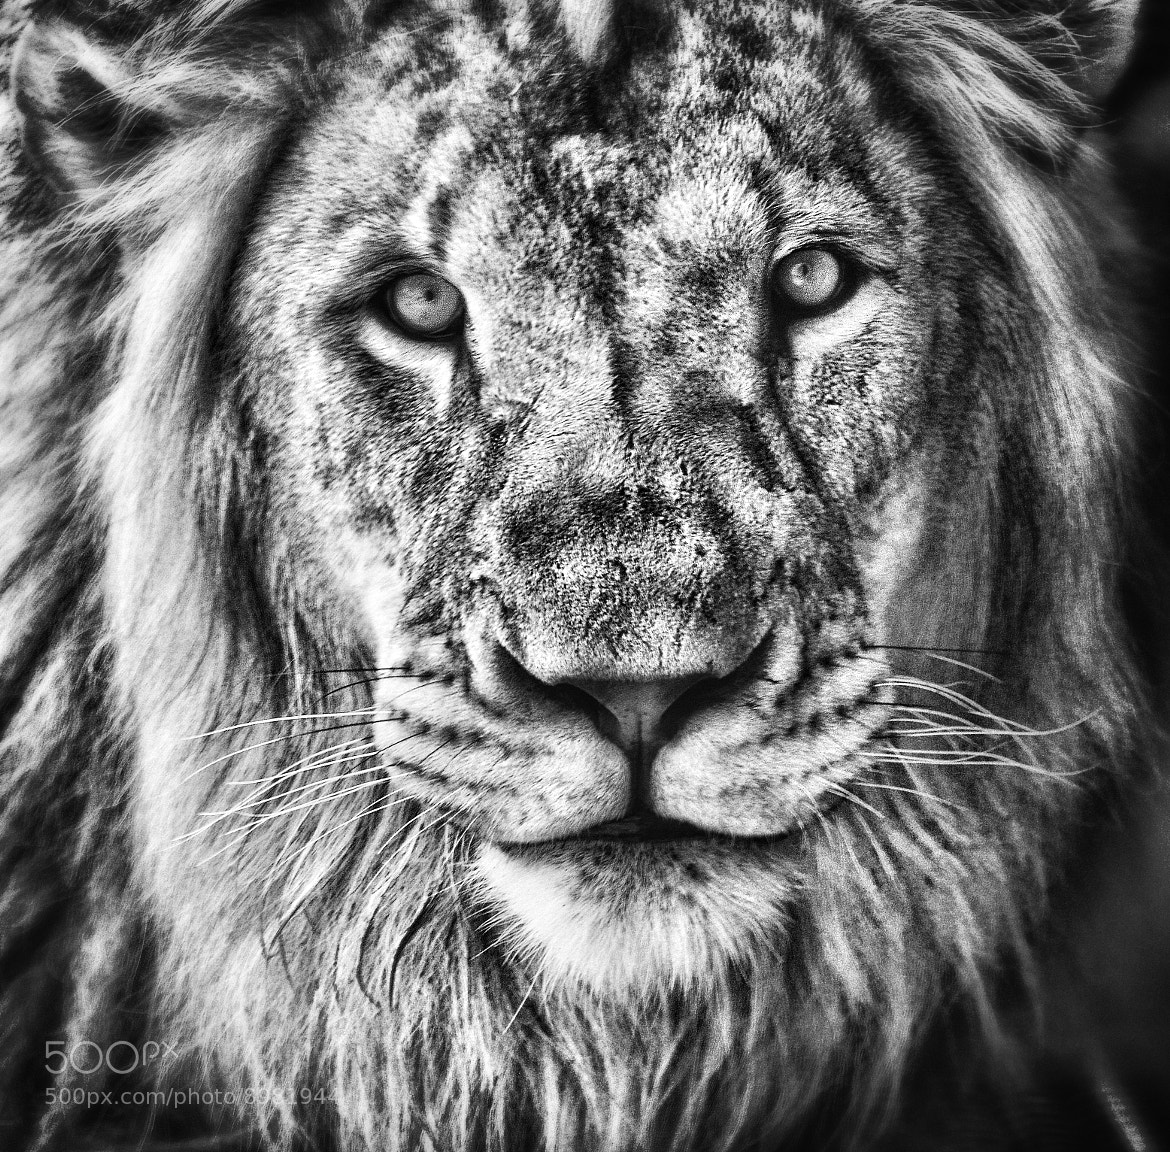 Photograph The King's Portrait by Jeff Clow on 500px